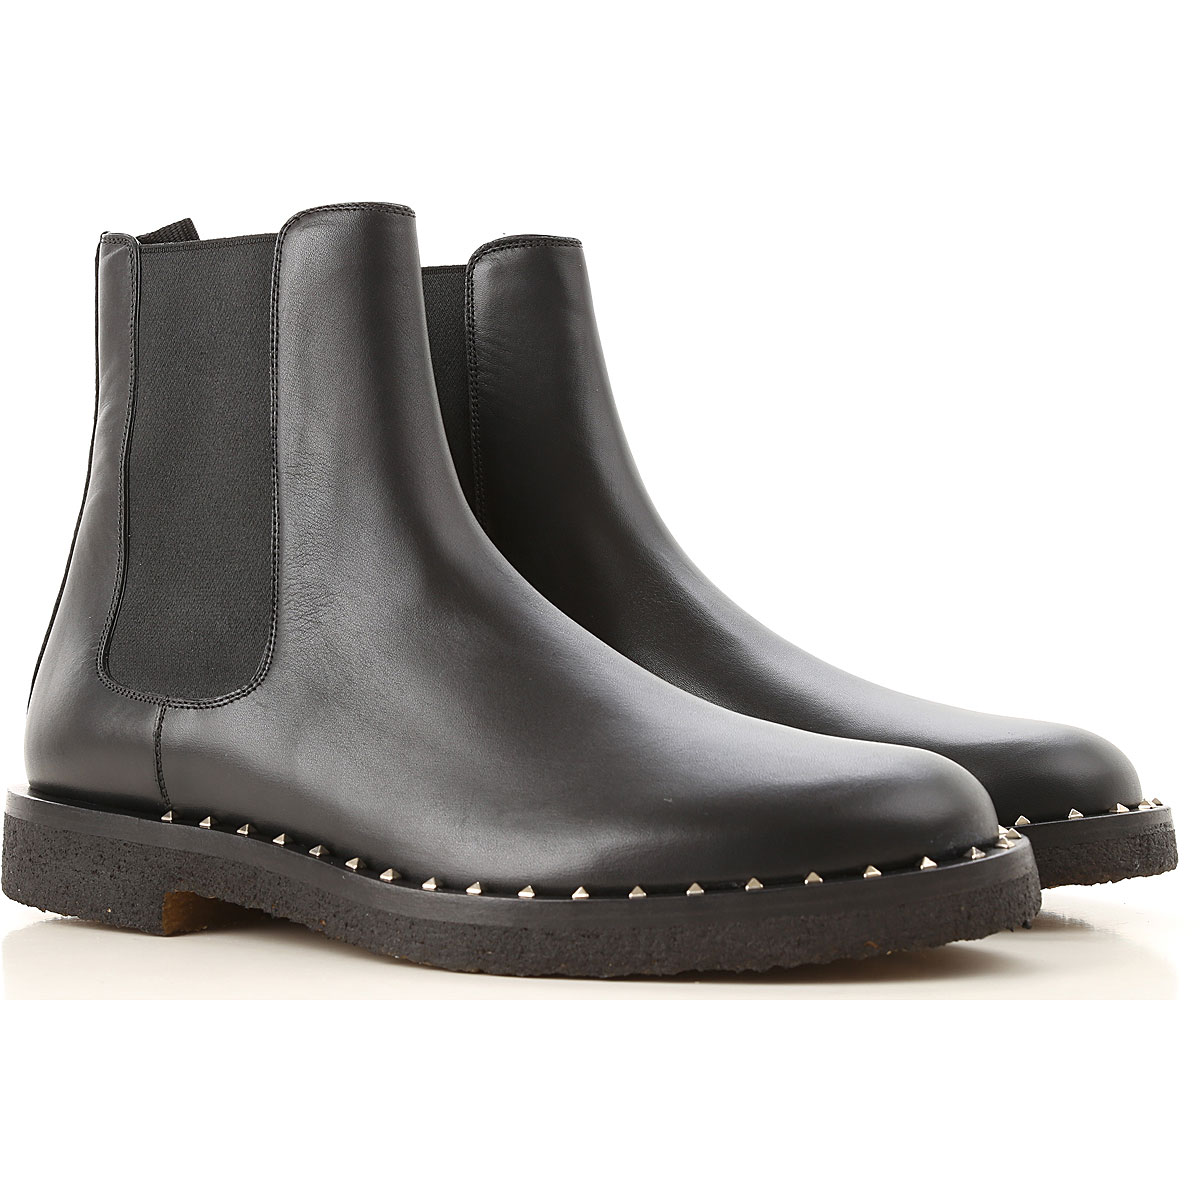 Valentino Garavani Boots for Men, Booties On Sale in Outlet, Black, Leather, 2019, 6.5 8